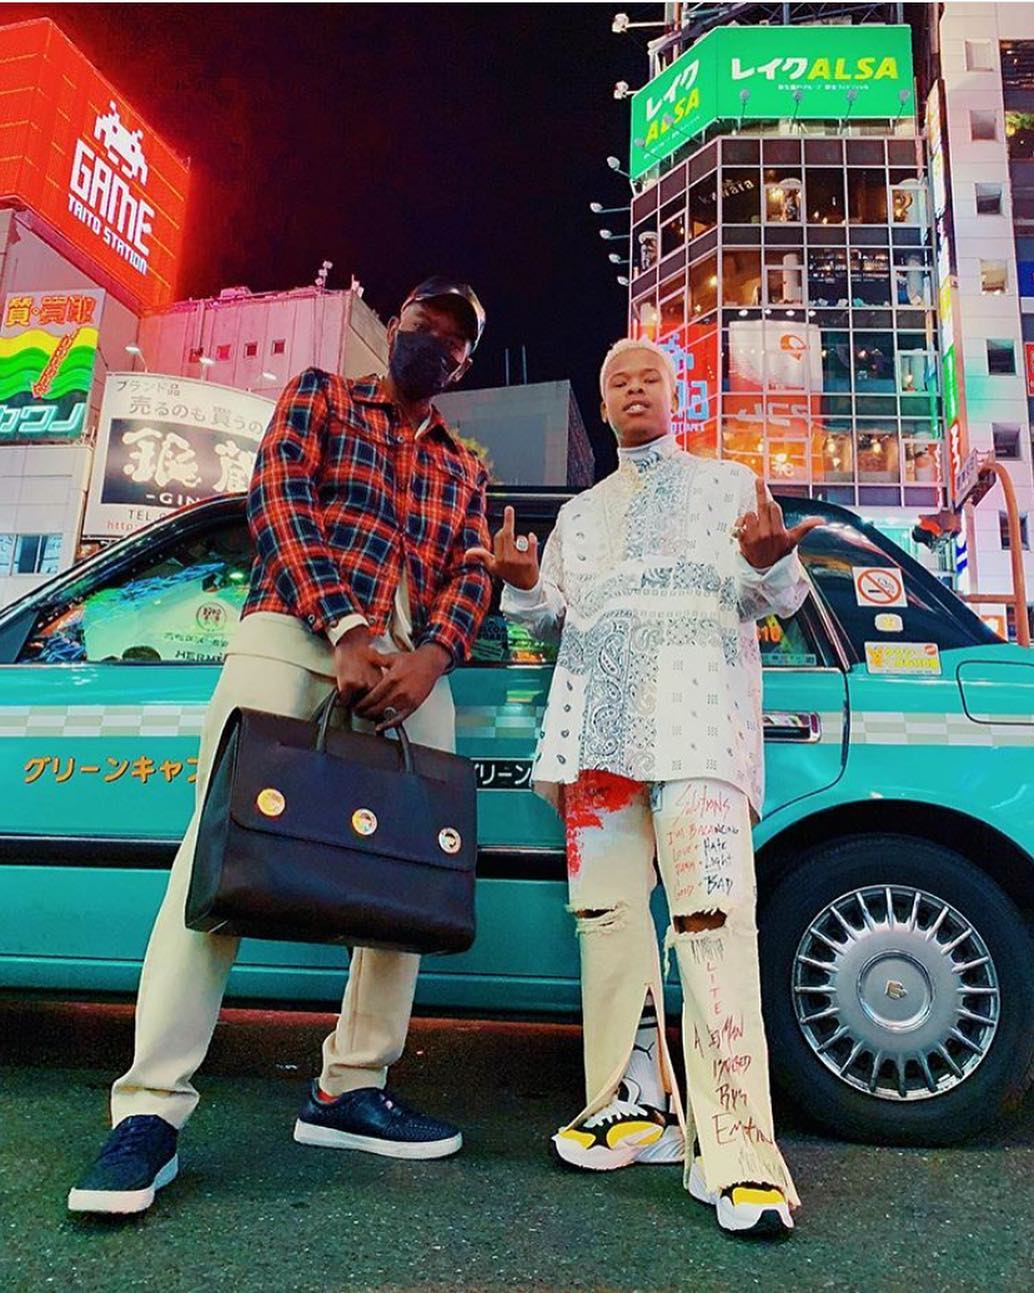 nasty c Watch Nasty C Recording New Music Out In Japan 55886186 615724872224216 7721315465562128603 n